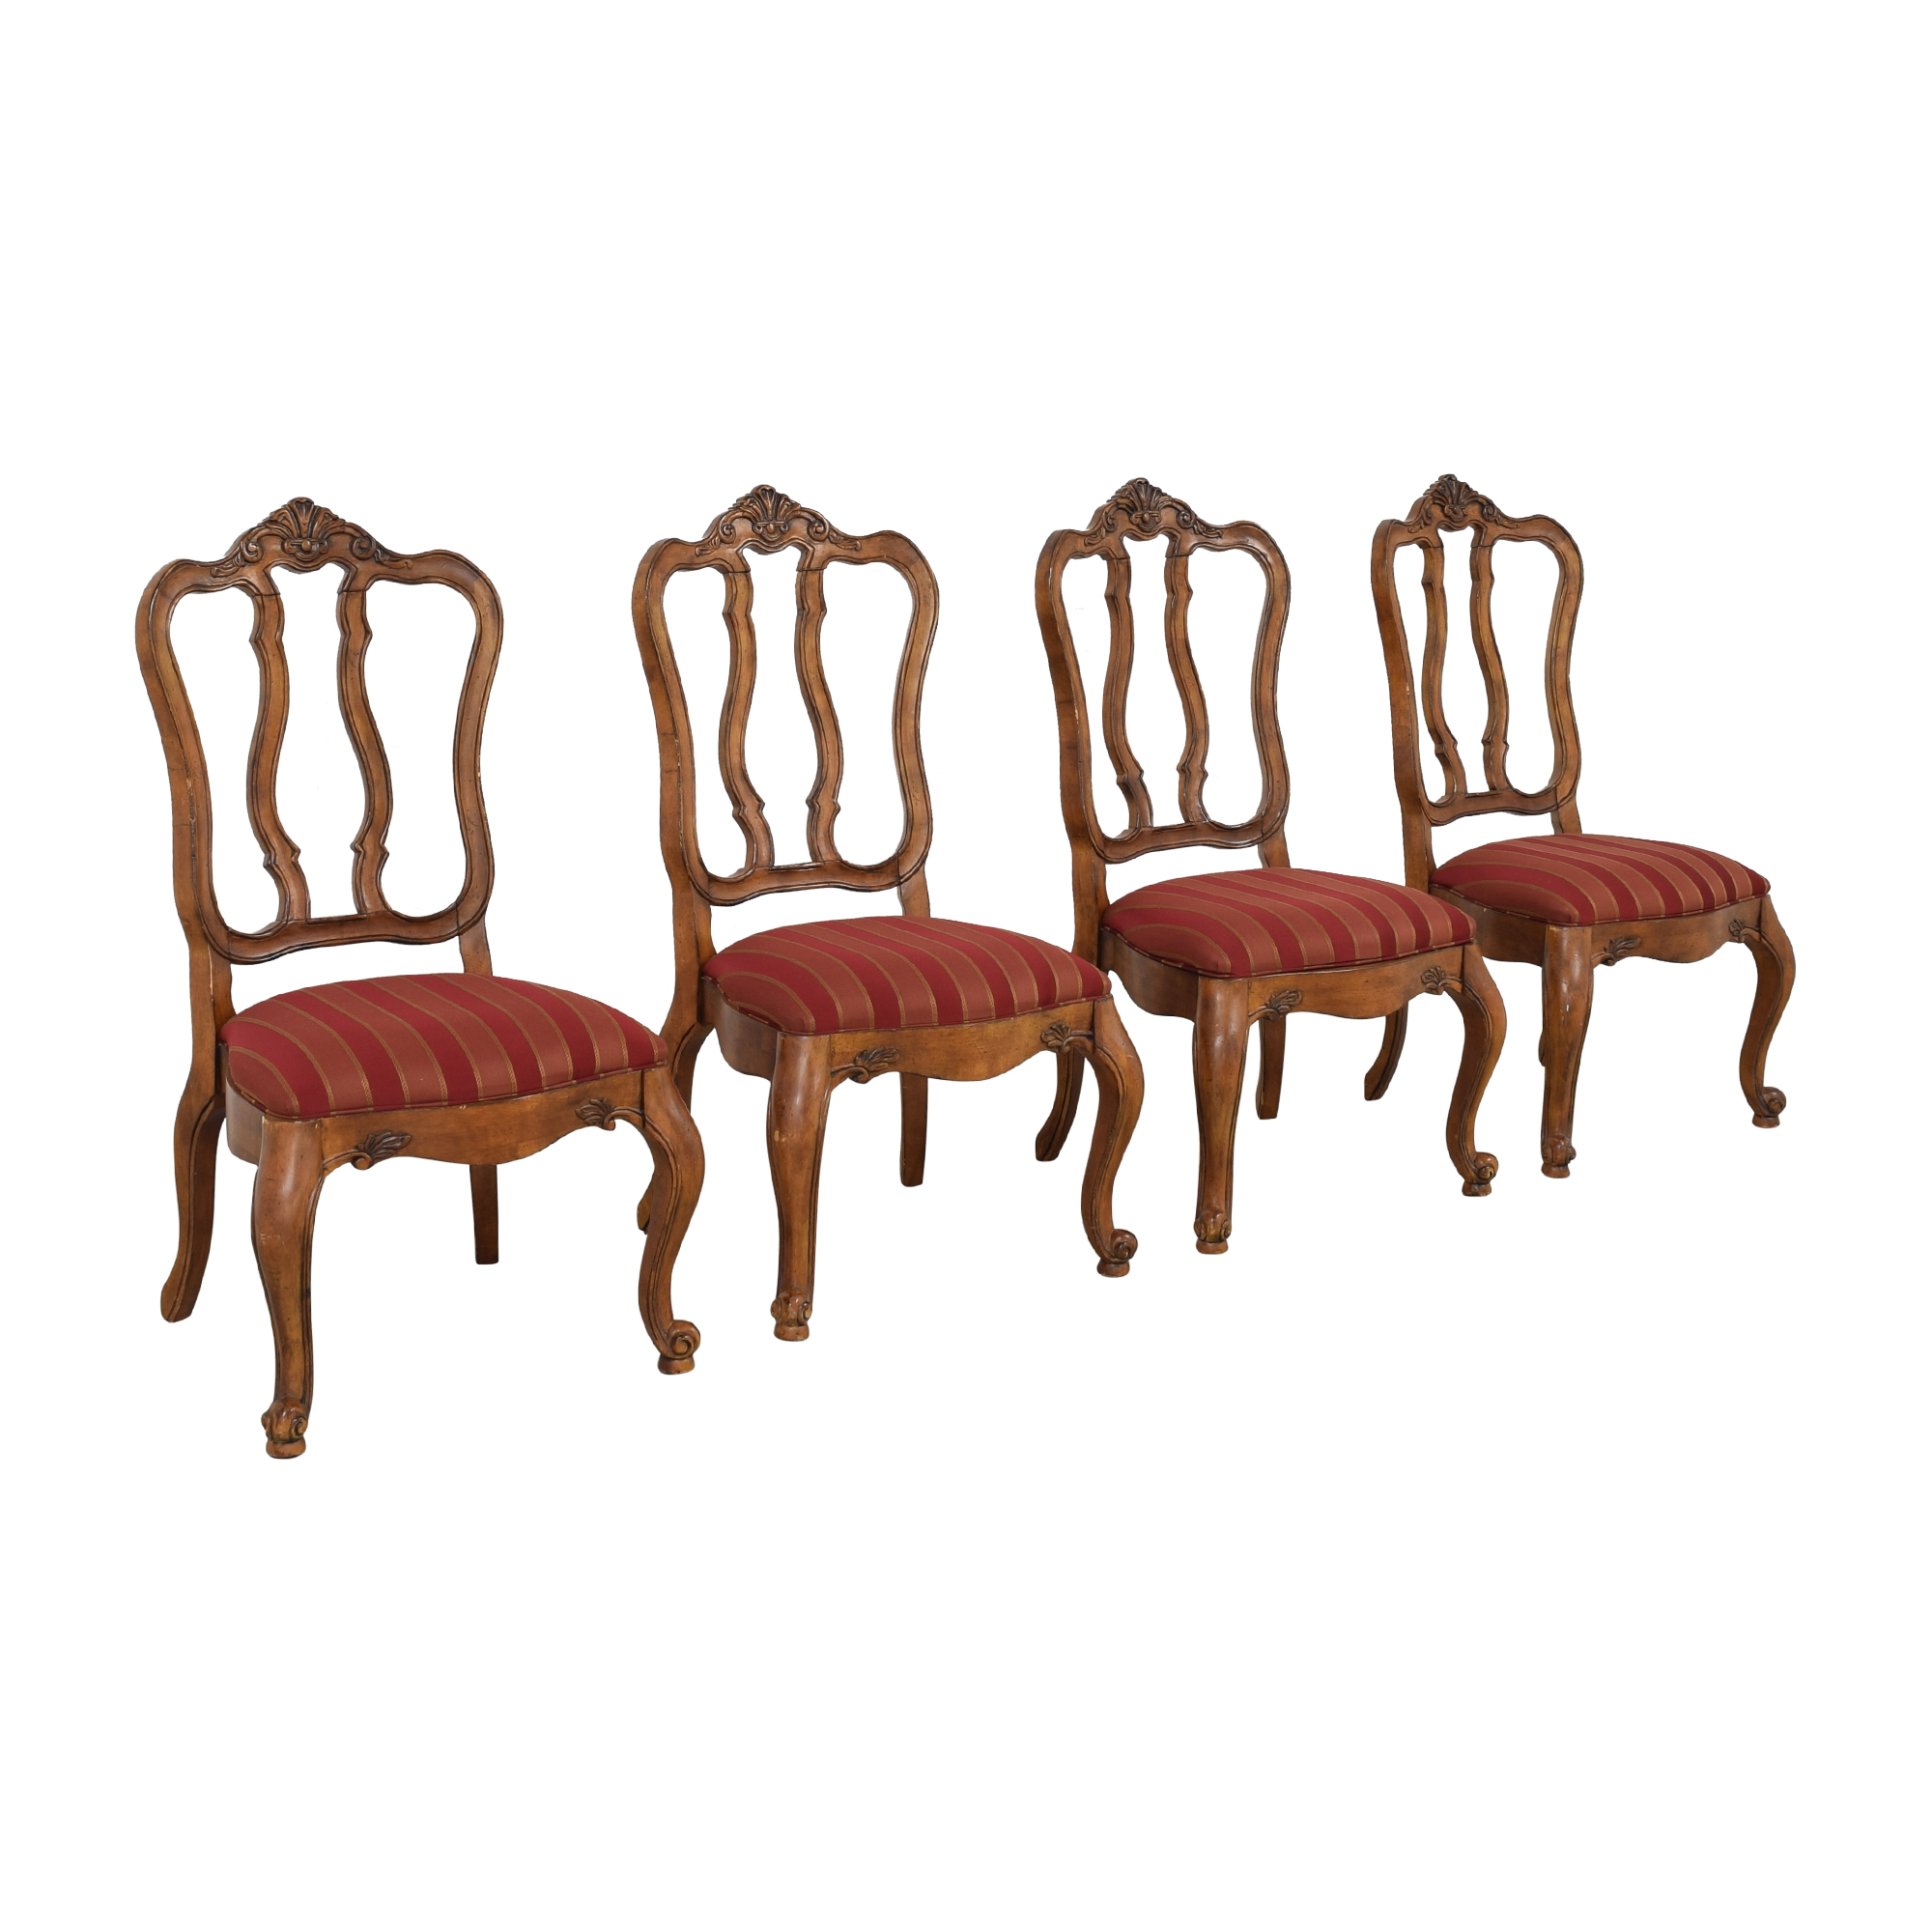 Ethan Allen Ethan Allen Tuscany Augustine Dining Chairs red and brown